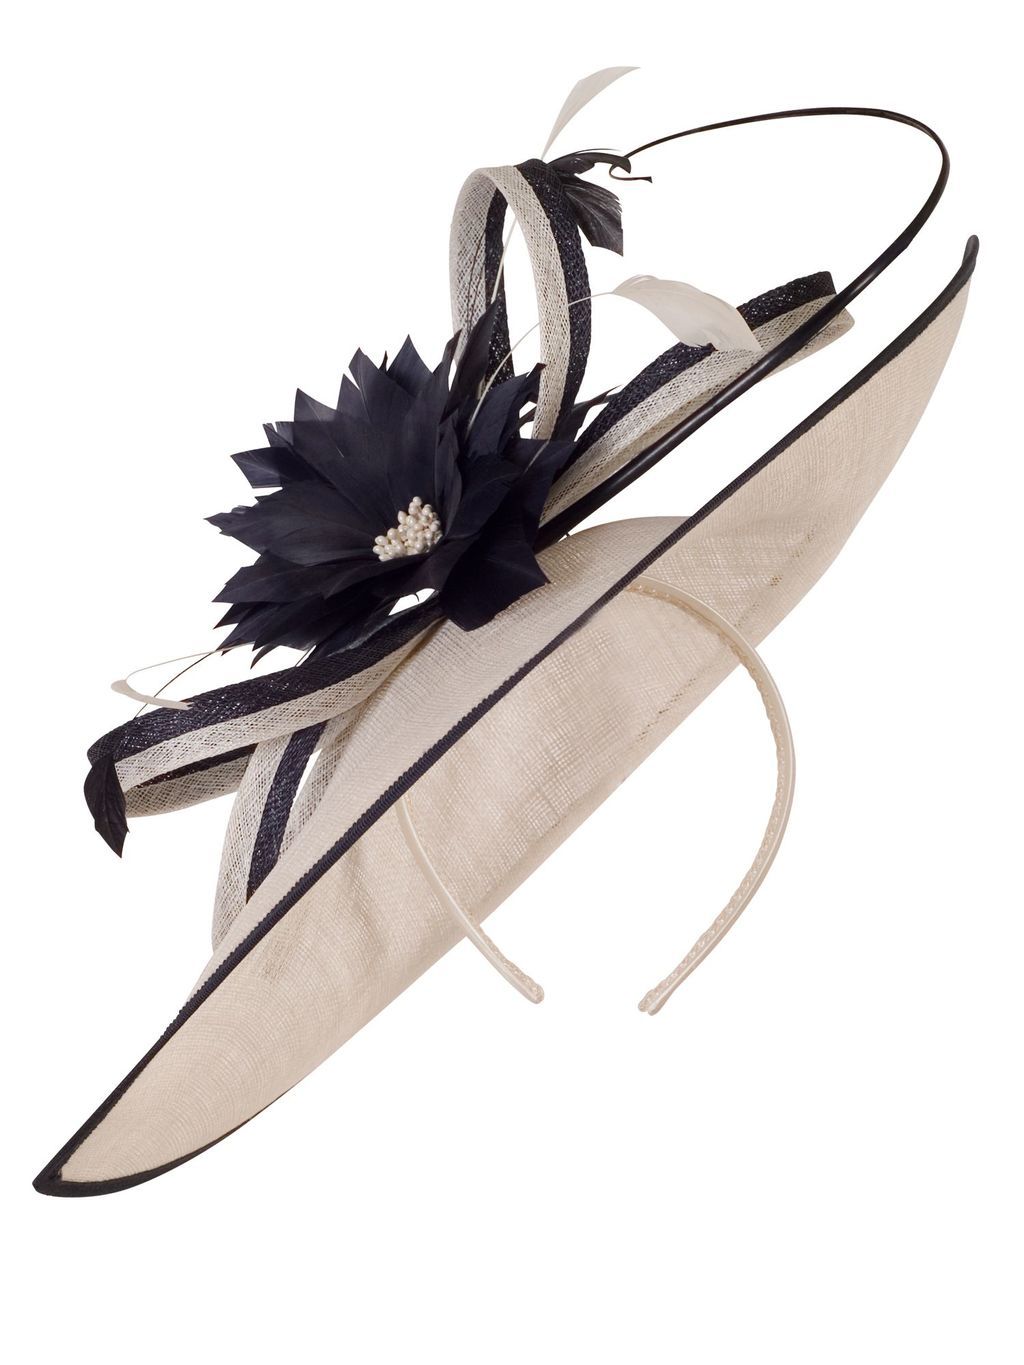 Medium Sinamay Feather Flowers Hatinator, Multi Coloured - predominant colour: stone; secondary colour: black; occasions: occasion; type of pattern: light; style: fascinator; size: large; material: macrame/raffia/straw; pattern: colourblock; embellishment: corsage; season: s/s 2016; wardrobe: event